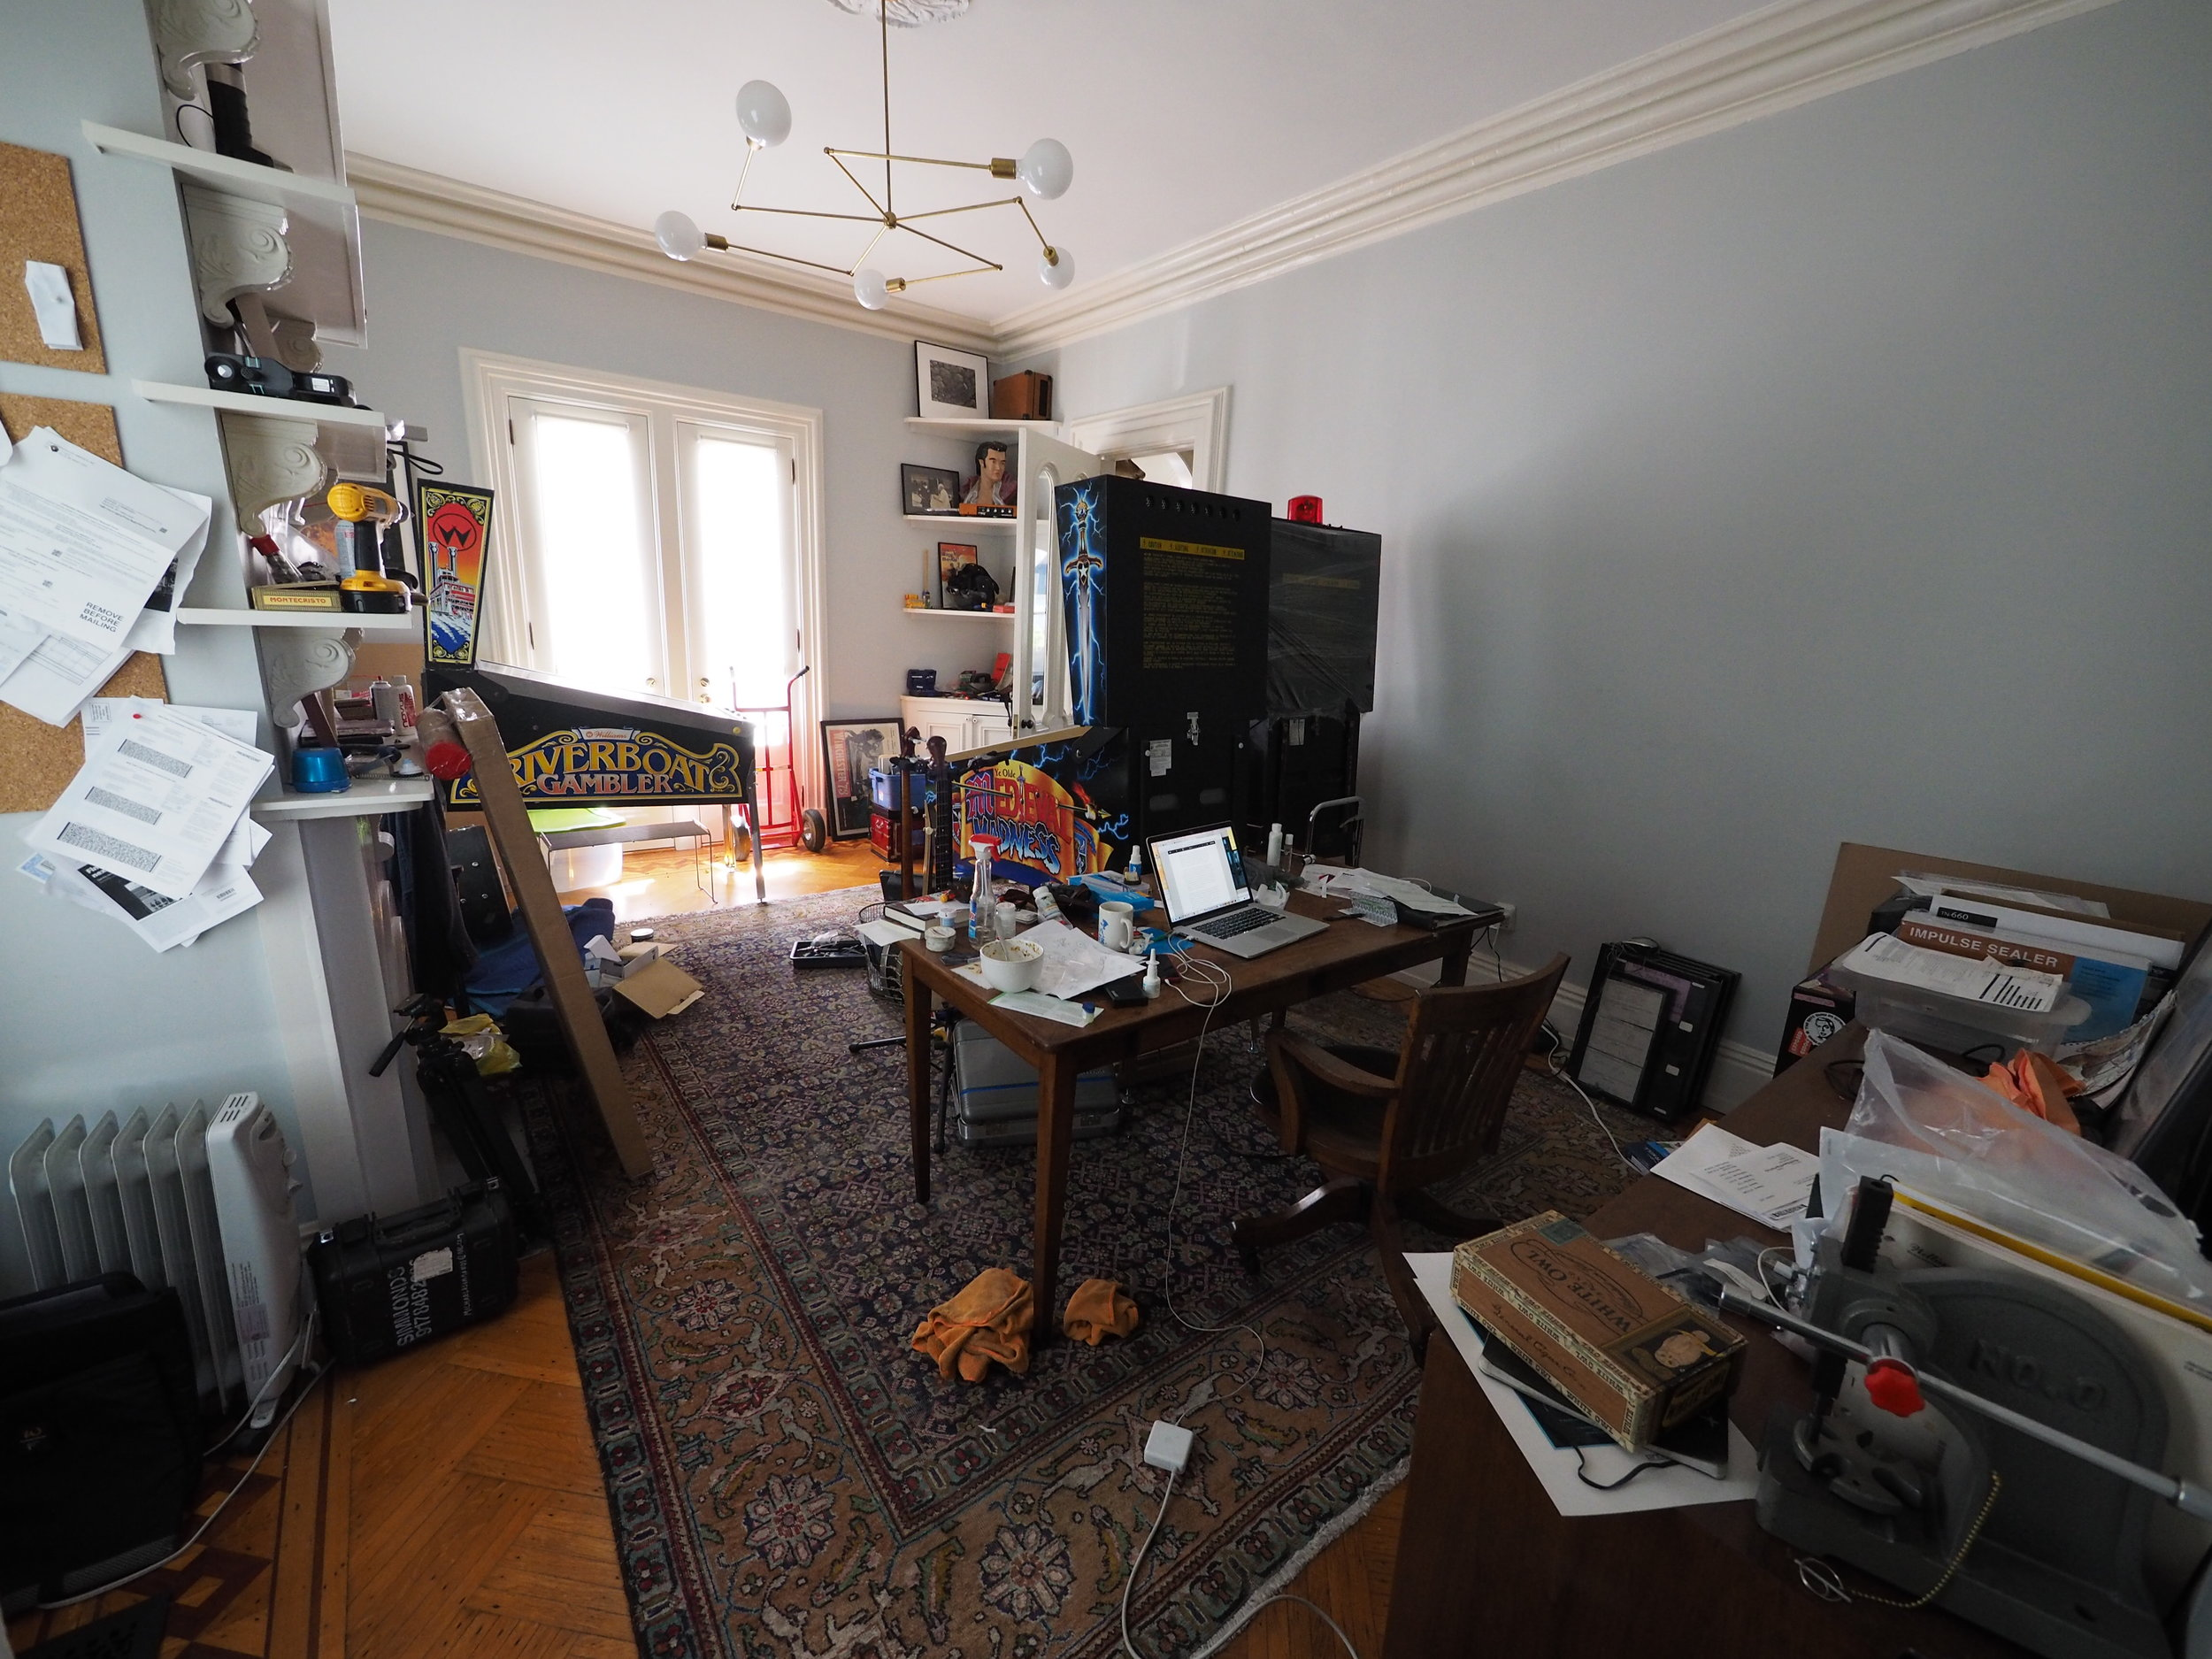 many attempts have been made to declutter this office, and all have failed.